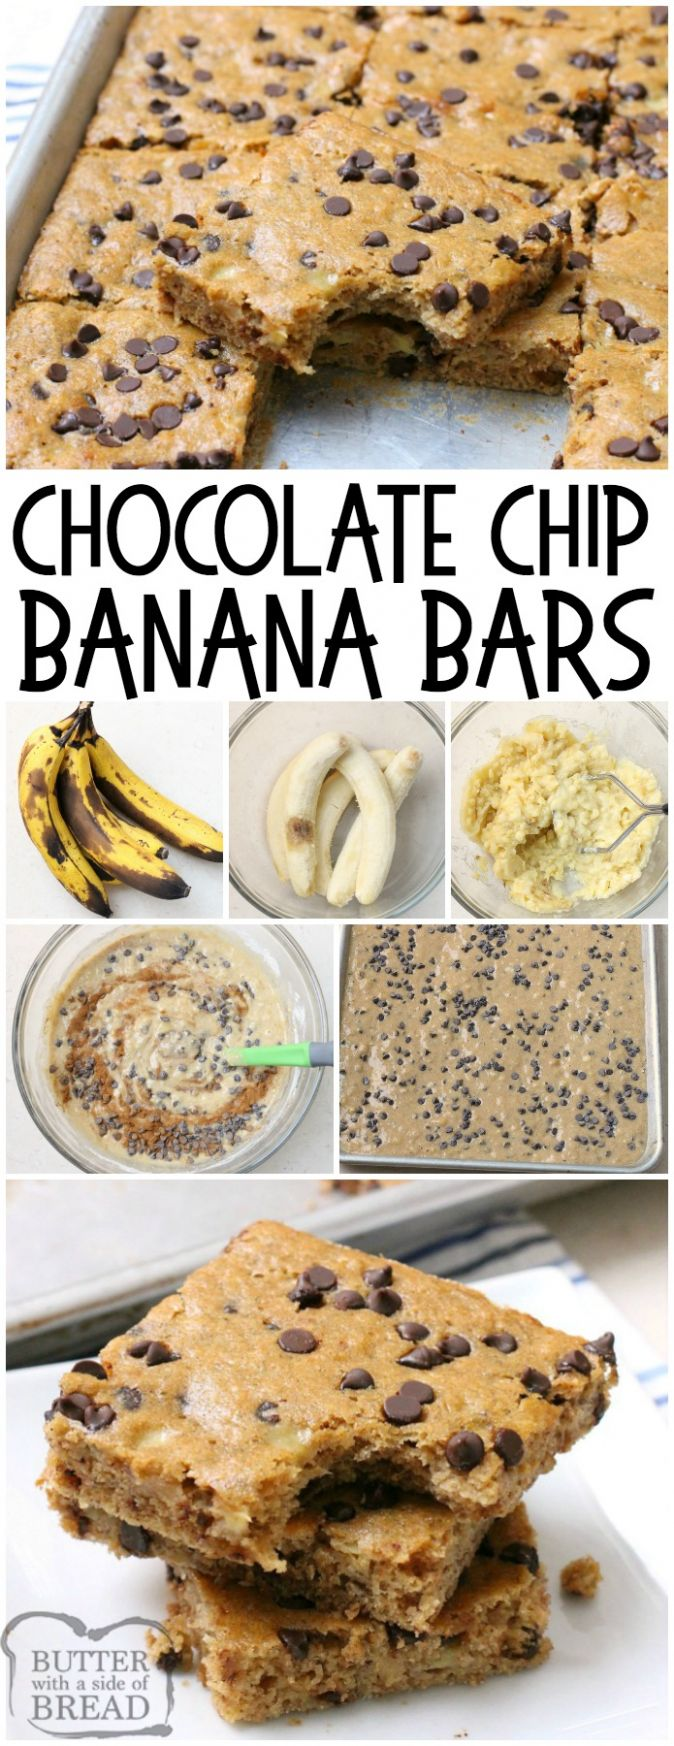 CHOCOLATE CHIP BANANA BARS - Butter with a Side of Bread - Breakfast Recipes With Bananas